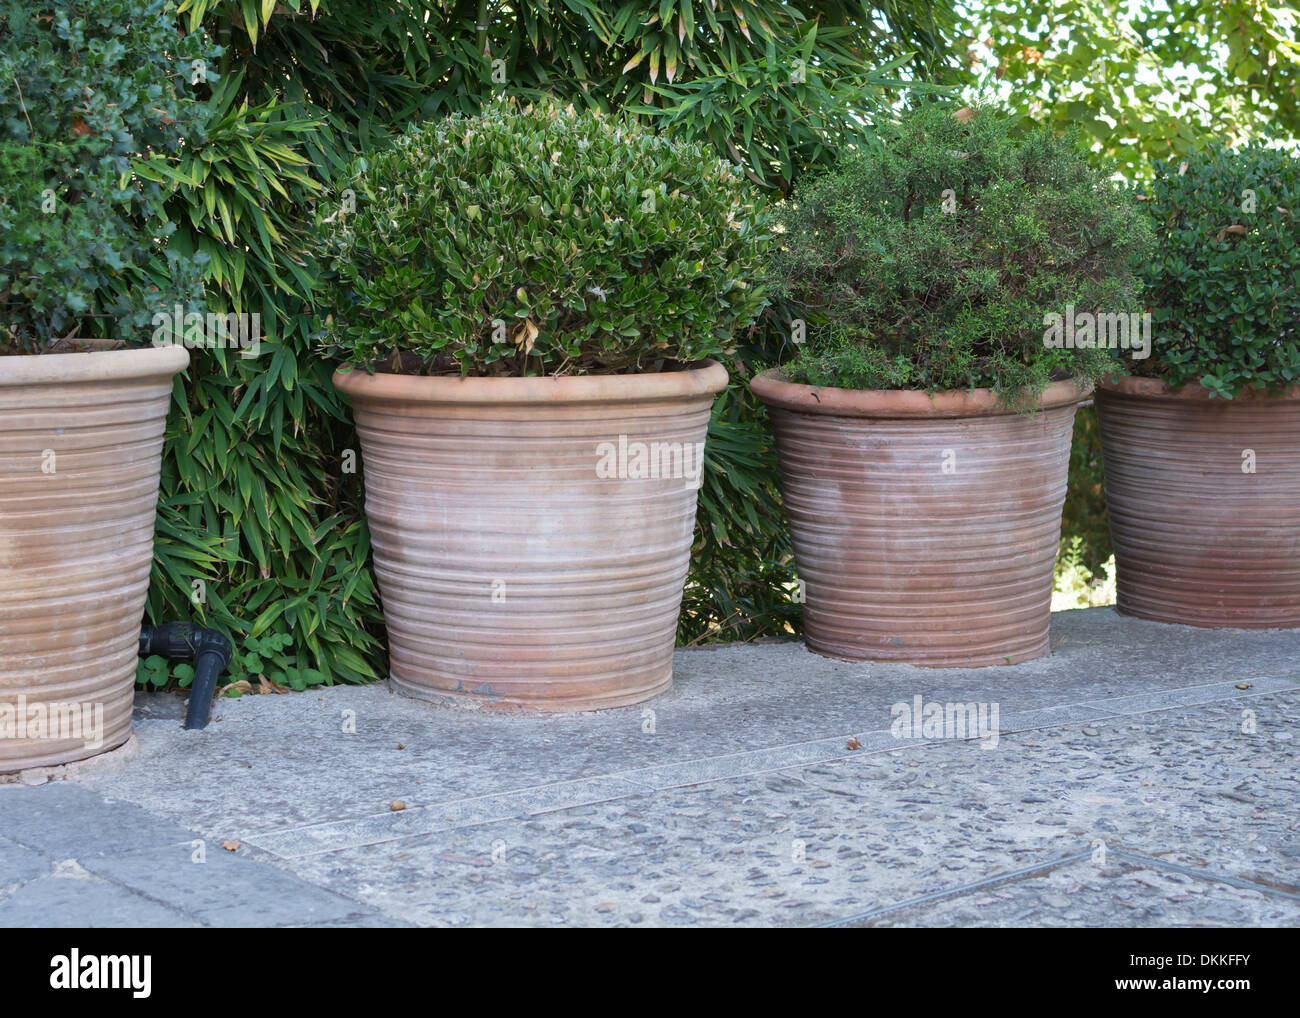 Gentil Four Large Terracotta Pots With Green Round Plants. Majorca, Balearic  Islands, Spain.